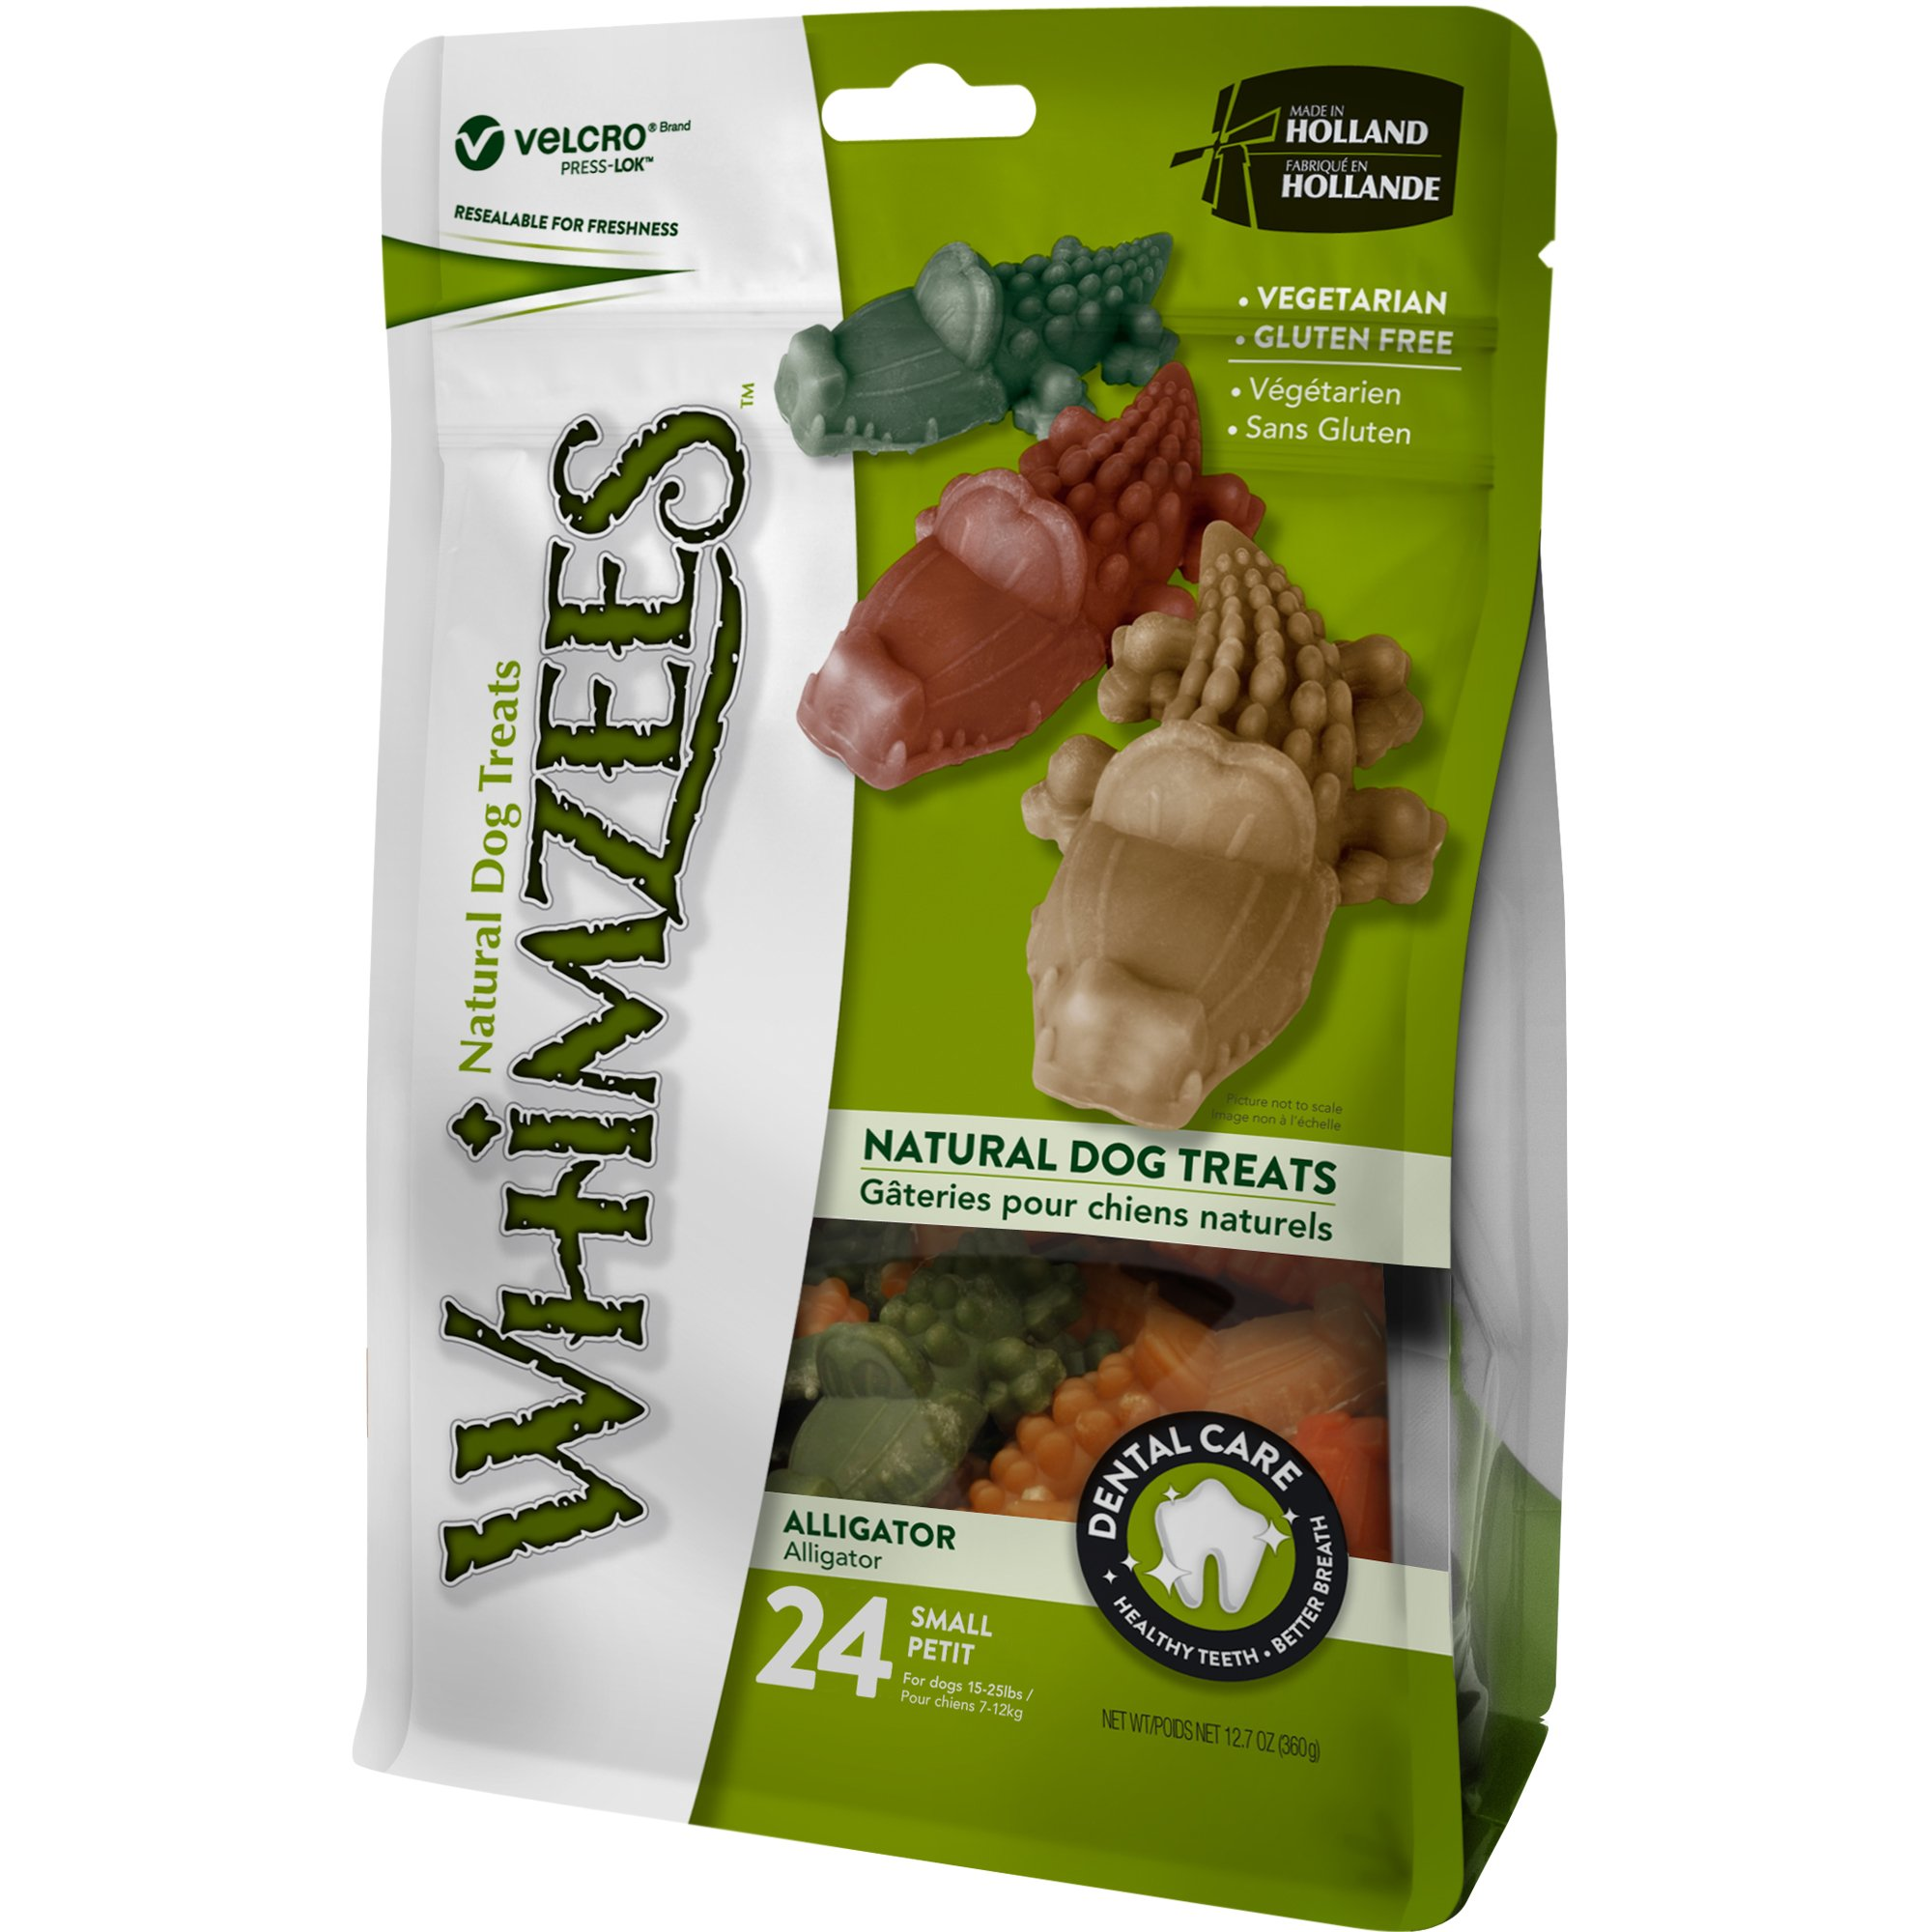 Whimzees Natural Grain Free Dental Dog Treats, Small Alligator, Bag 24